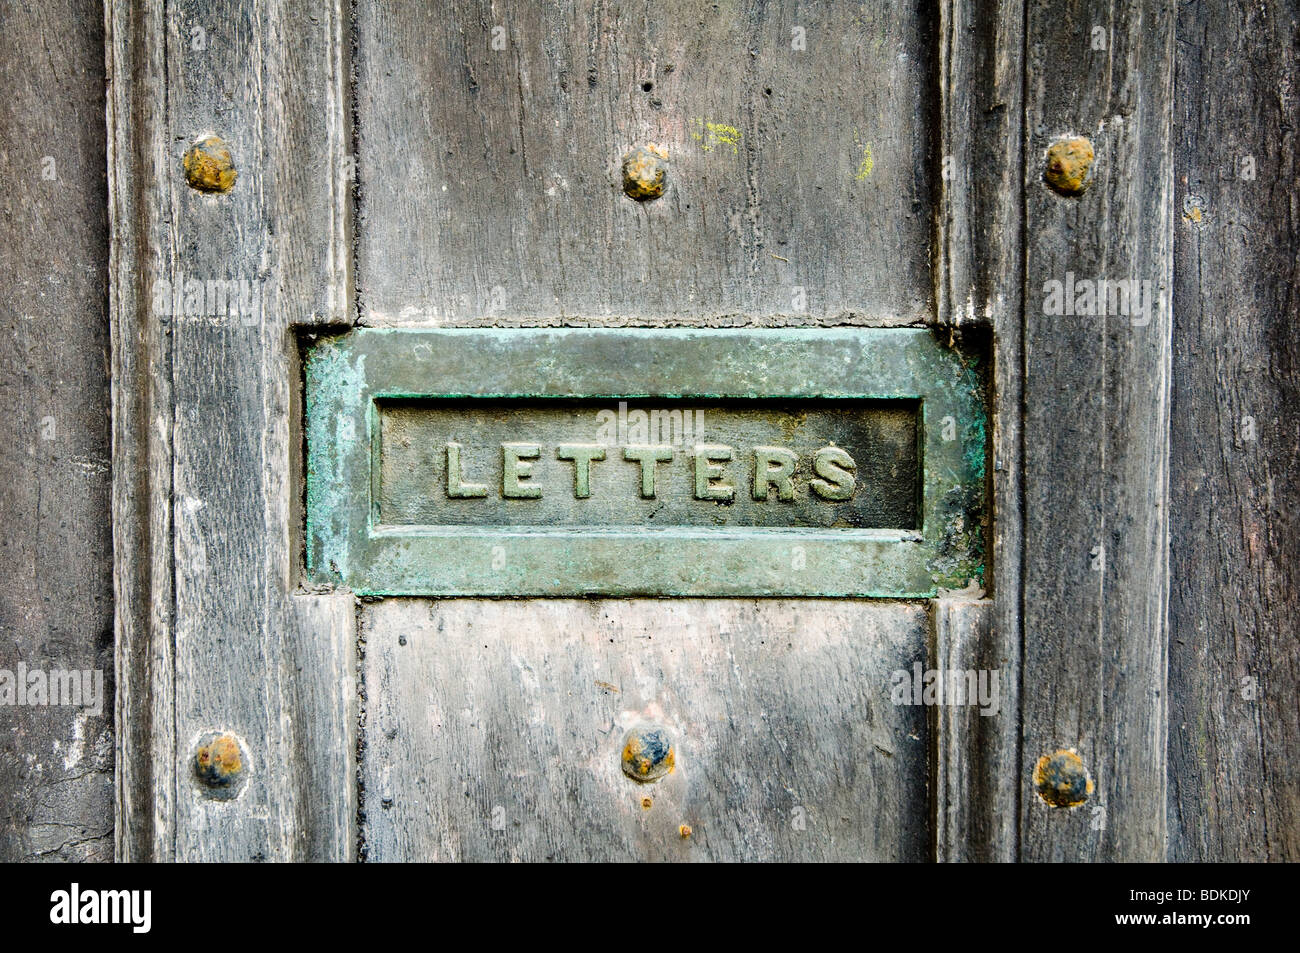 A letter box, with a verdigris patina, inset into an old and weathered oak door, with heavy nails. Stock Photo